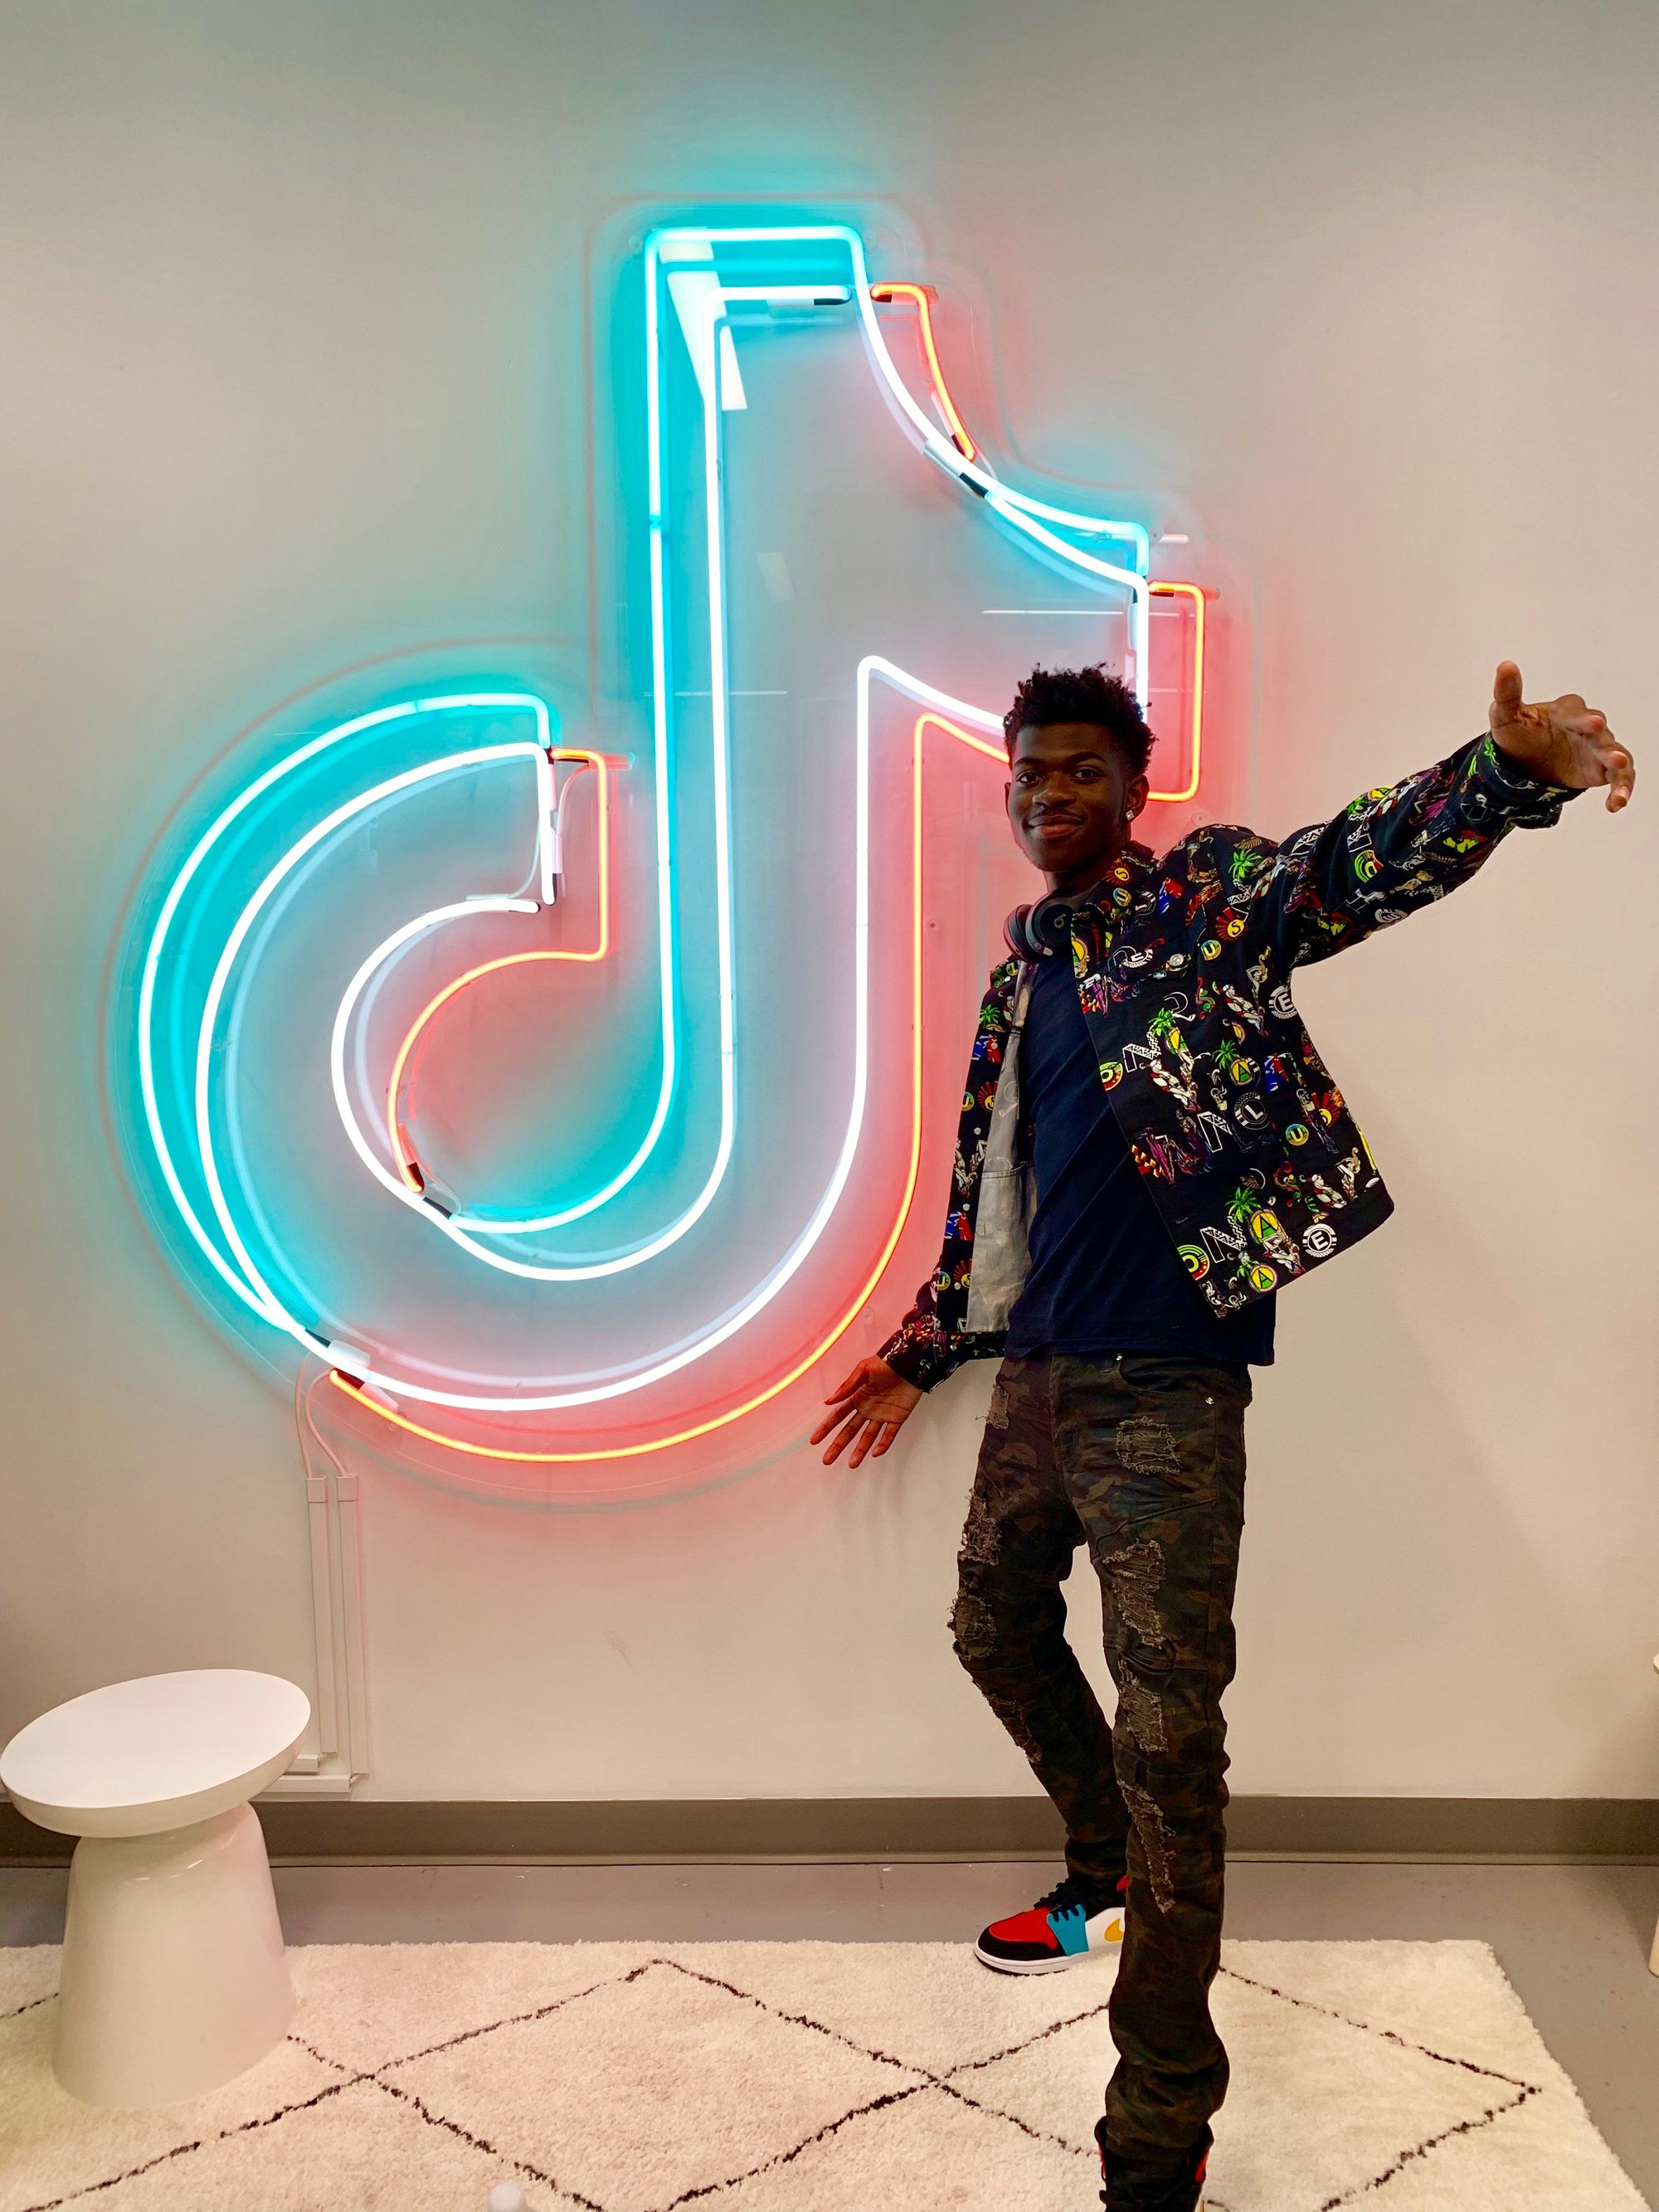 Old Town Road' proves TikTok is a new SoundCloud for artists